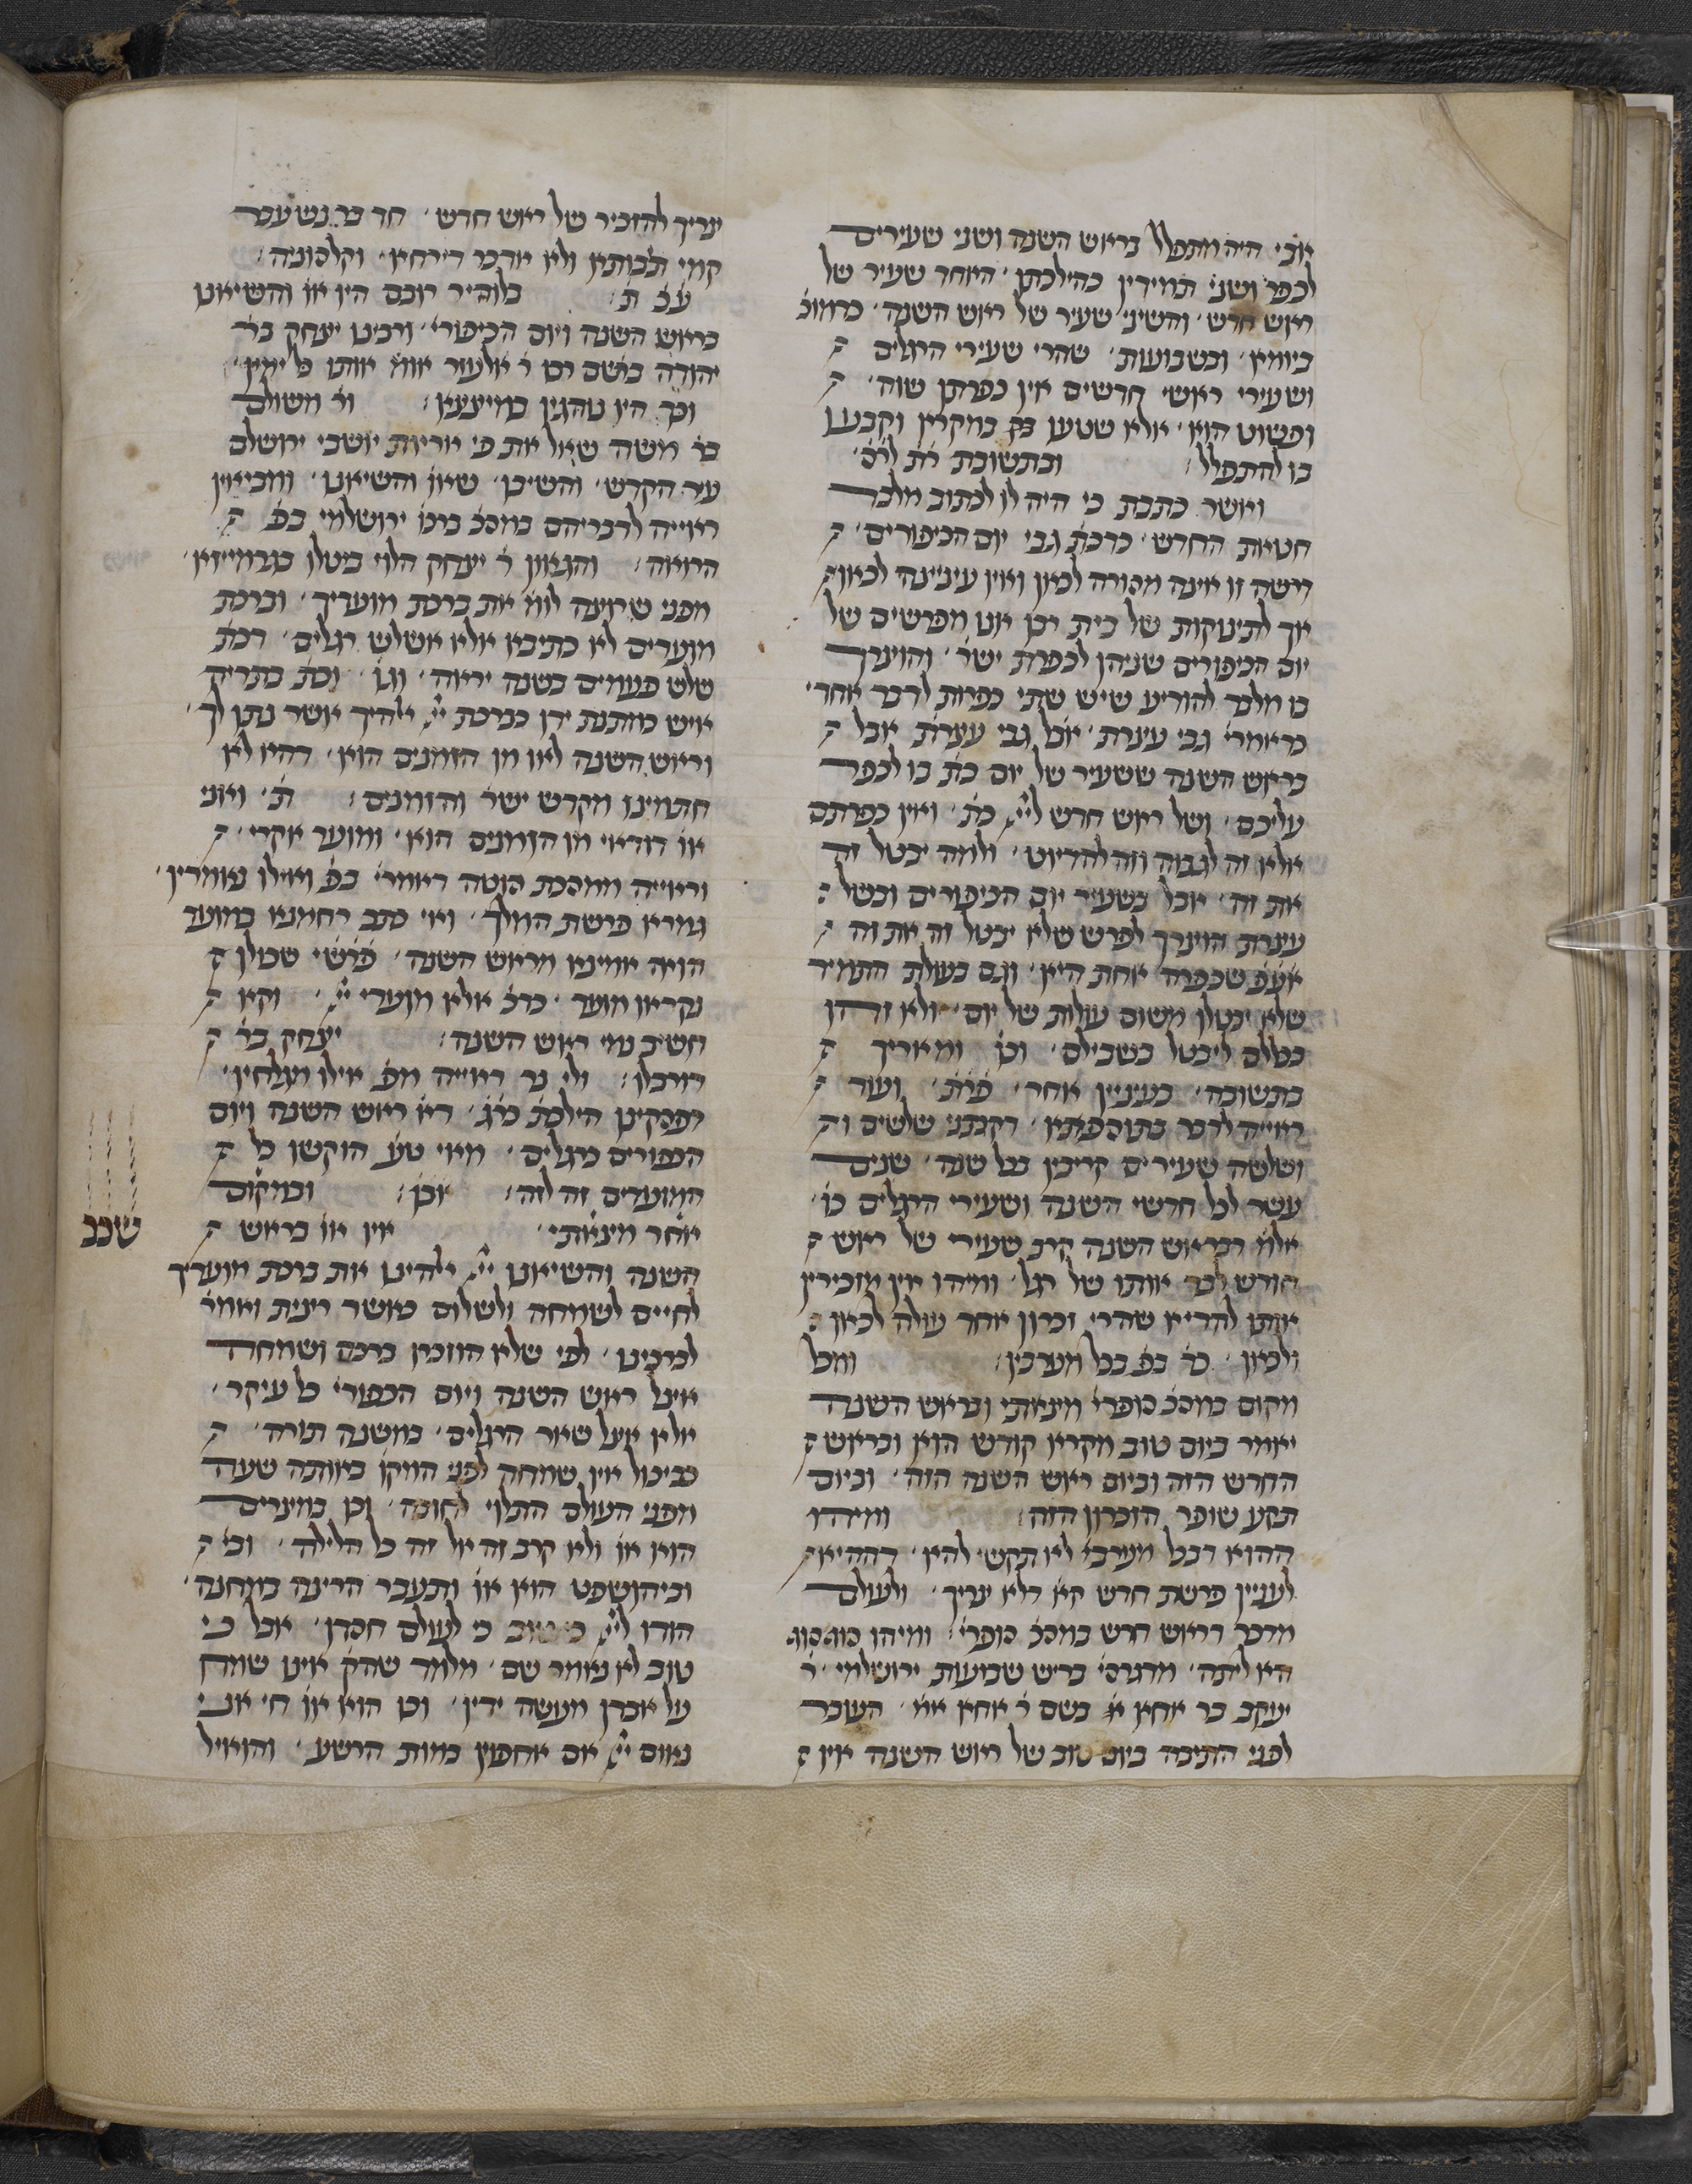 Commentary on the laws of Rosh ha-Shana, Mahzor Vitry, Add MS 27201, Hebrew Manuscripts Digitisation Project, British Library